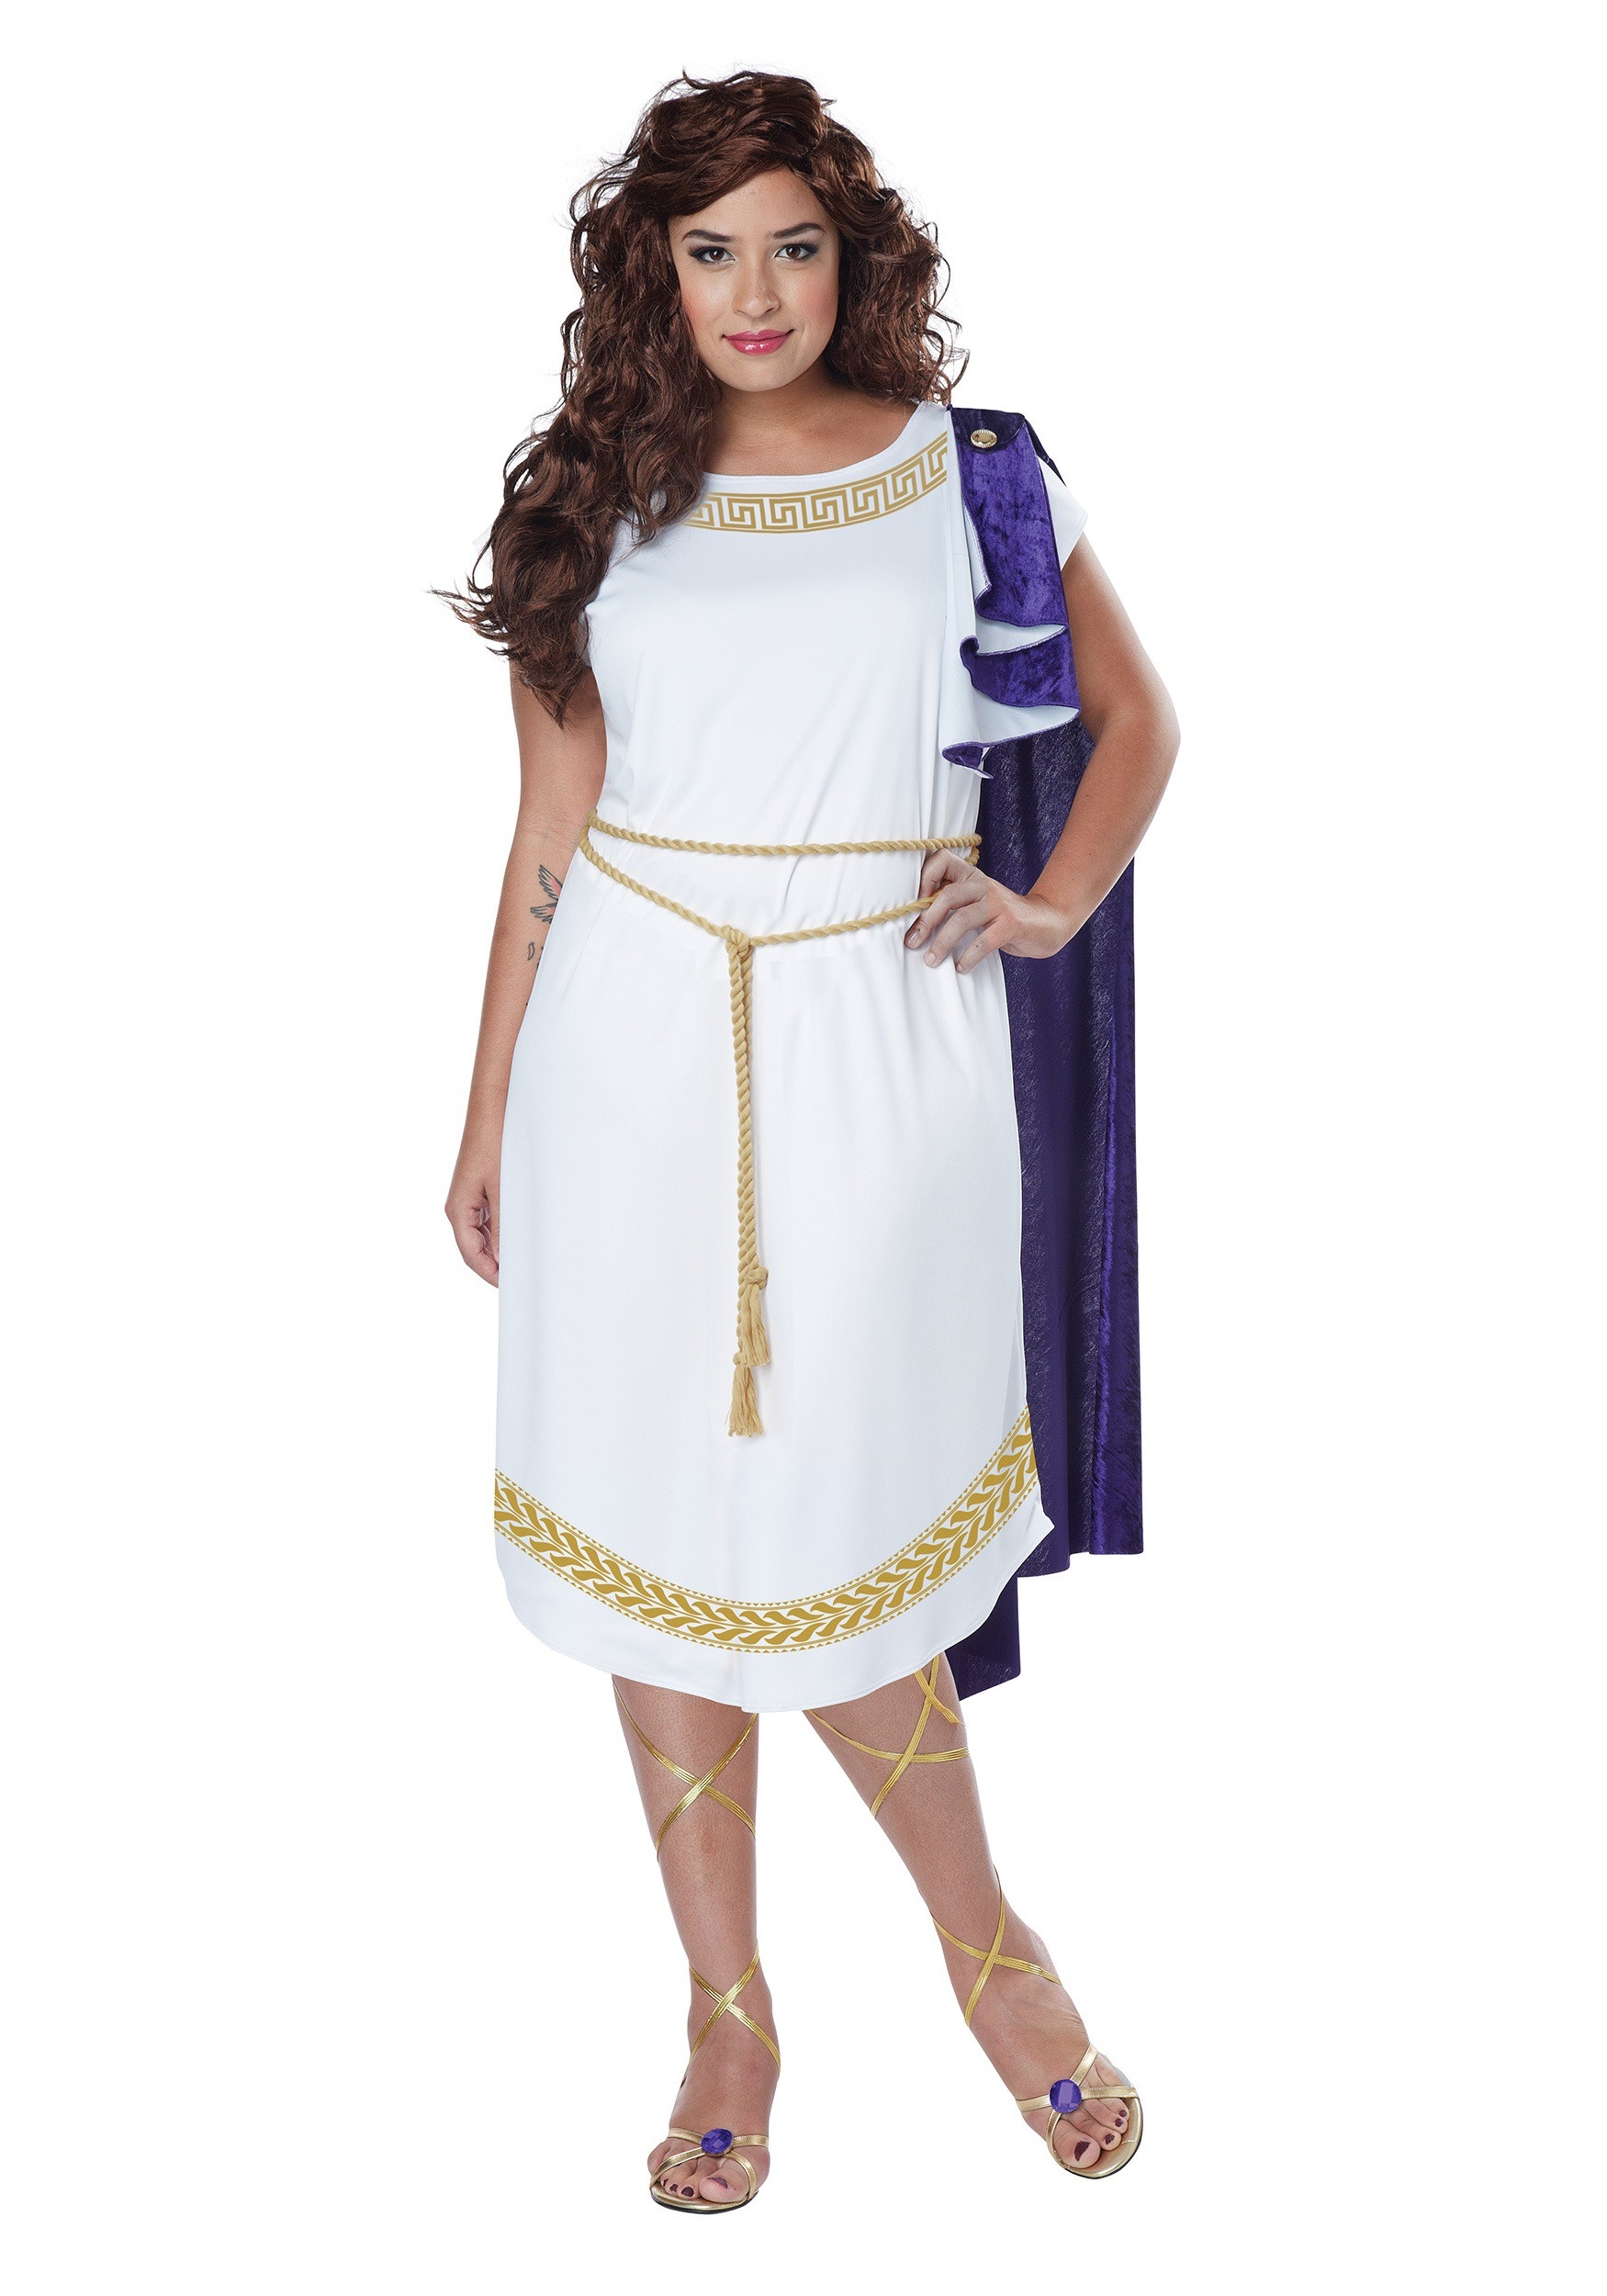 plus halloween women's grecian toga white dress greek goddess adult